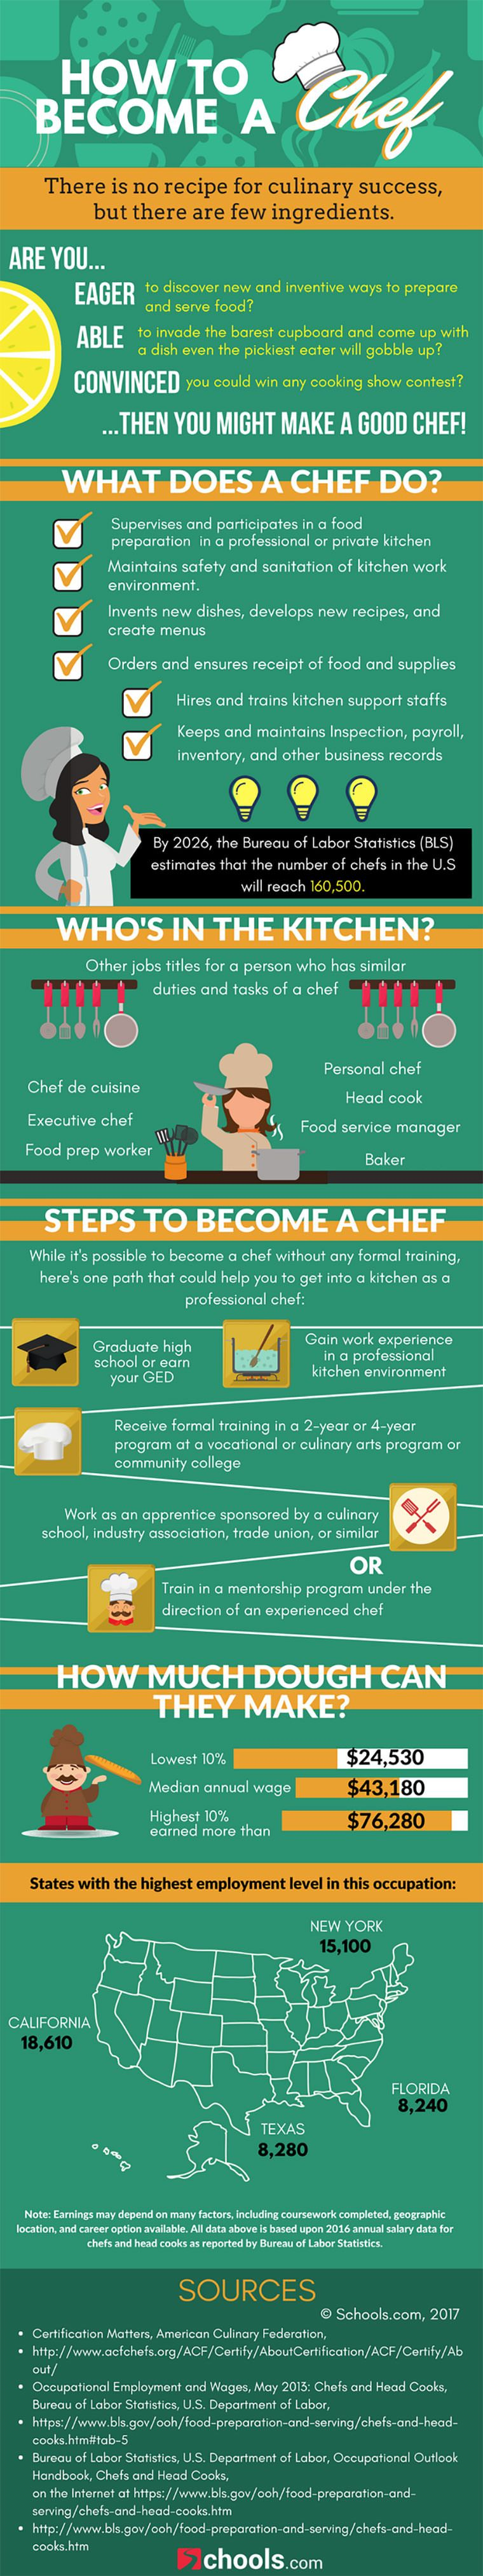 How To Become a Chef #Infographic | Infographic and Time management